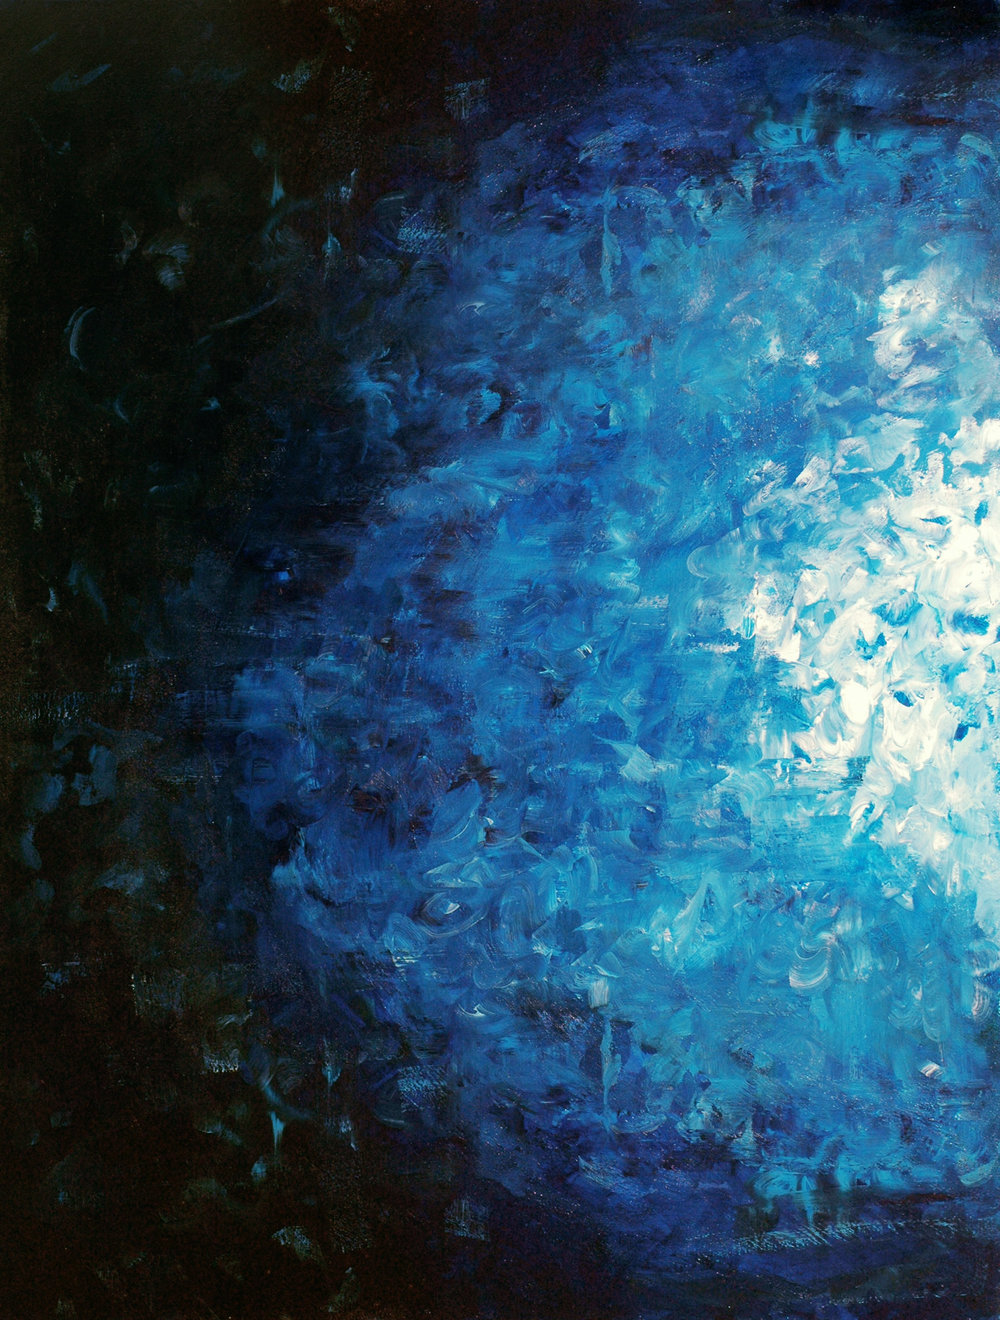 Esperante, 2013, acrylic on canvas, 36x48in